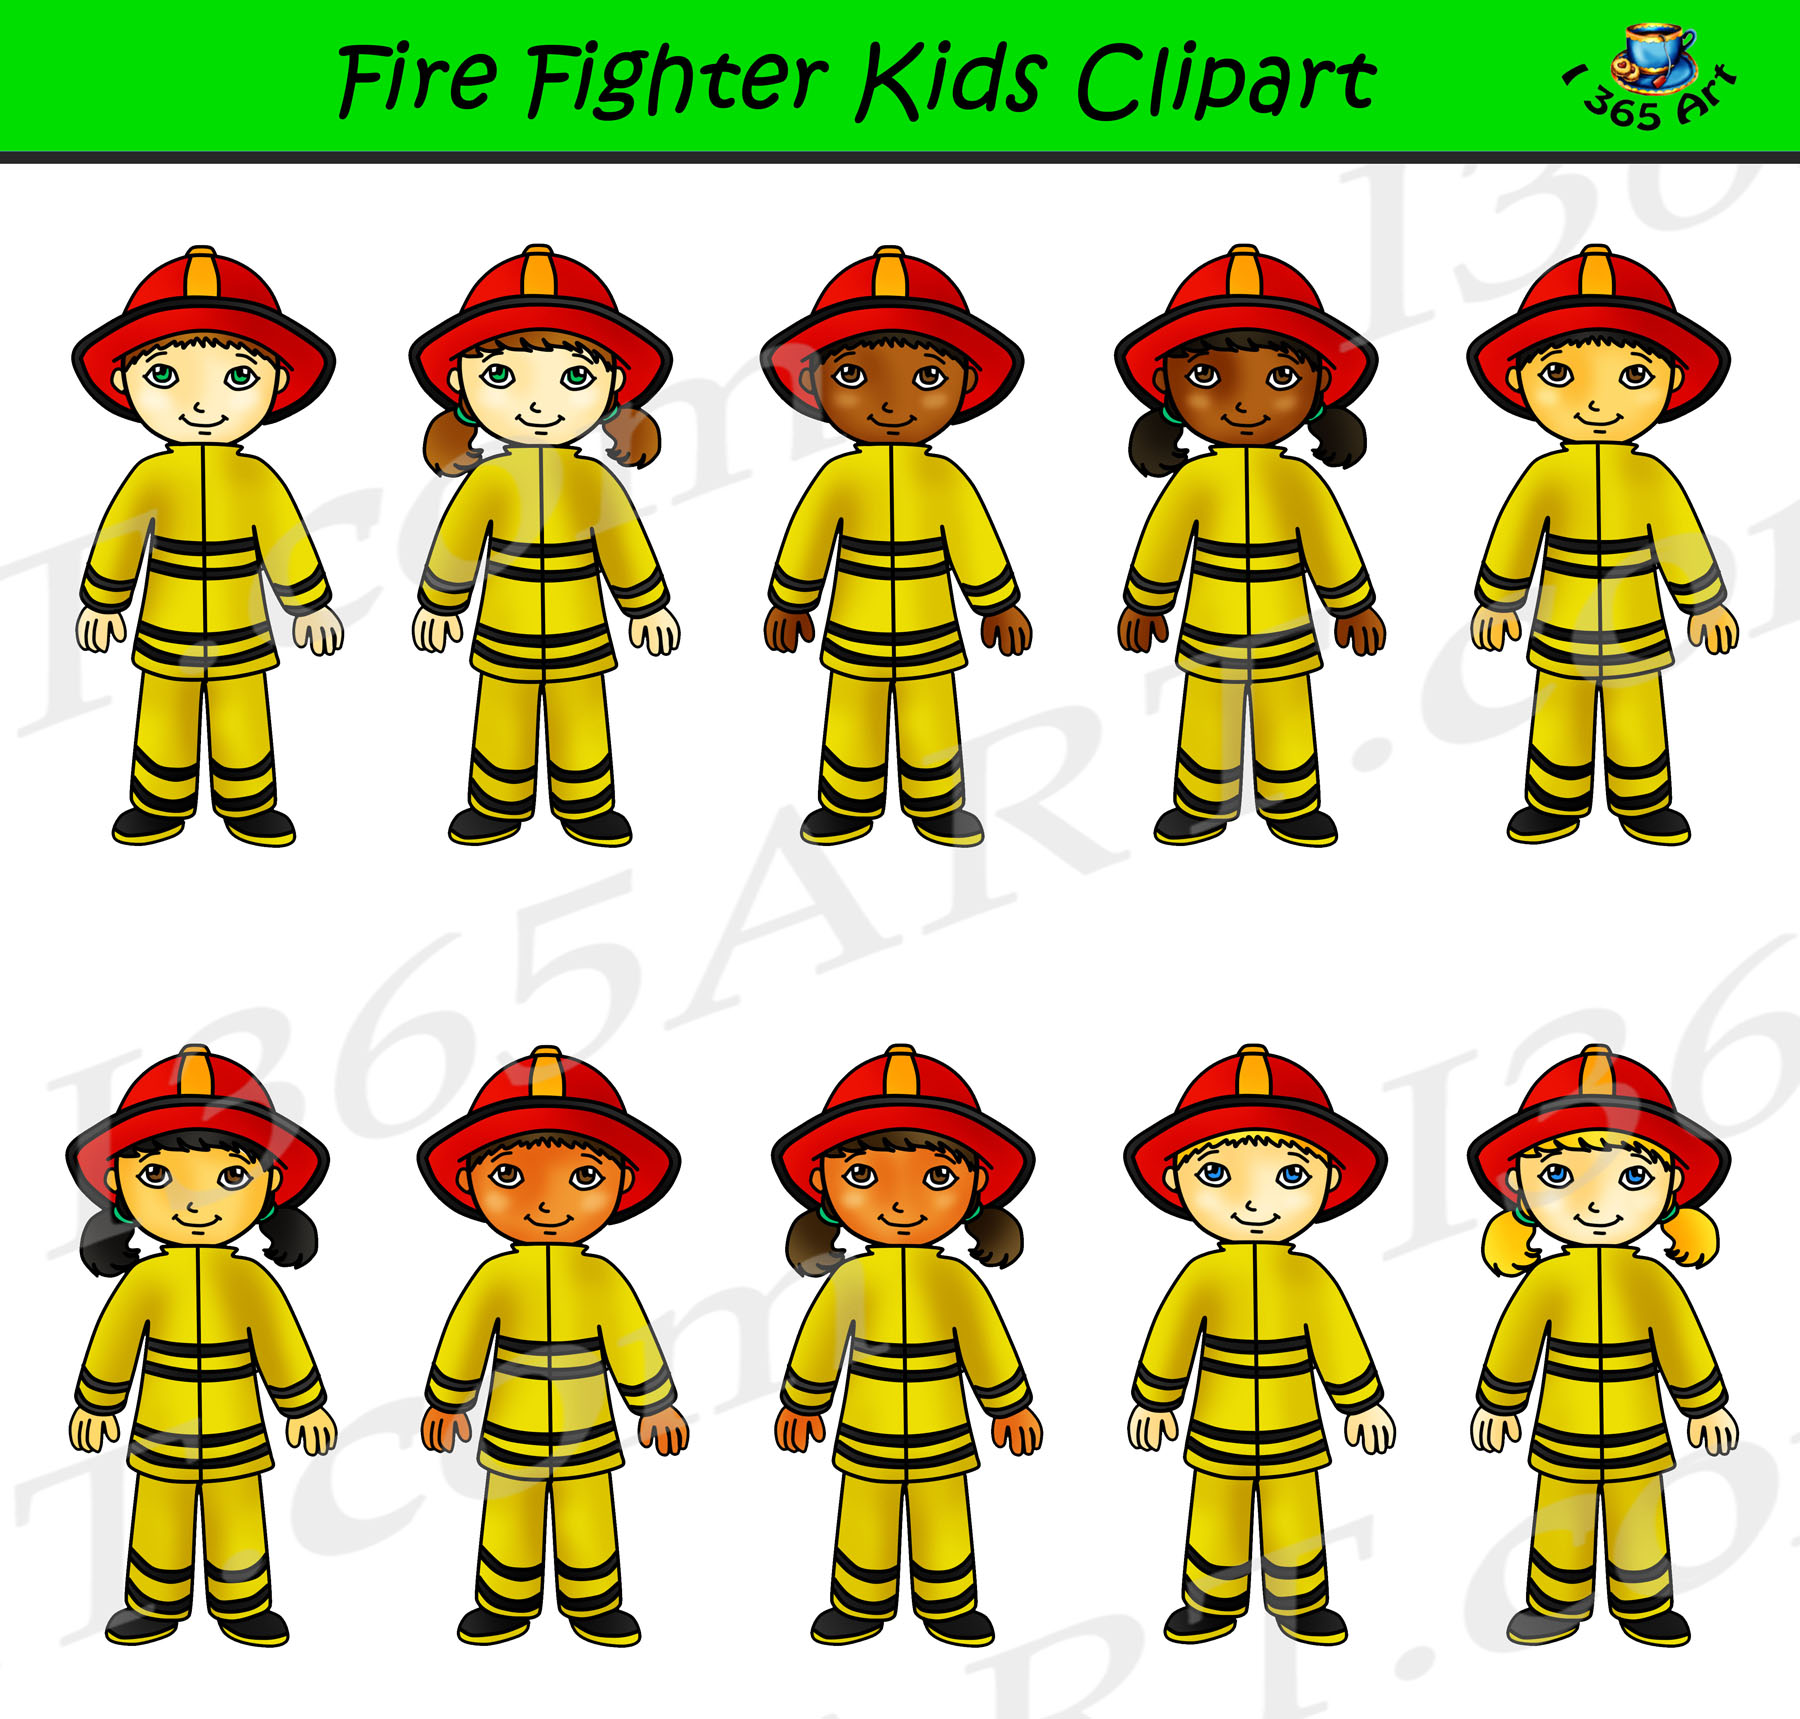 Firefighter clipart for kids 4 » Clipart Station.